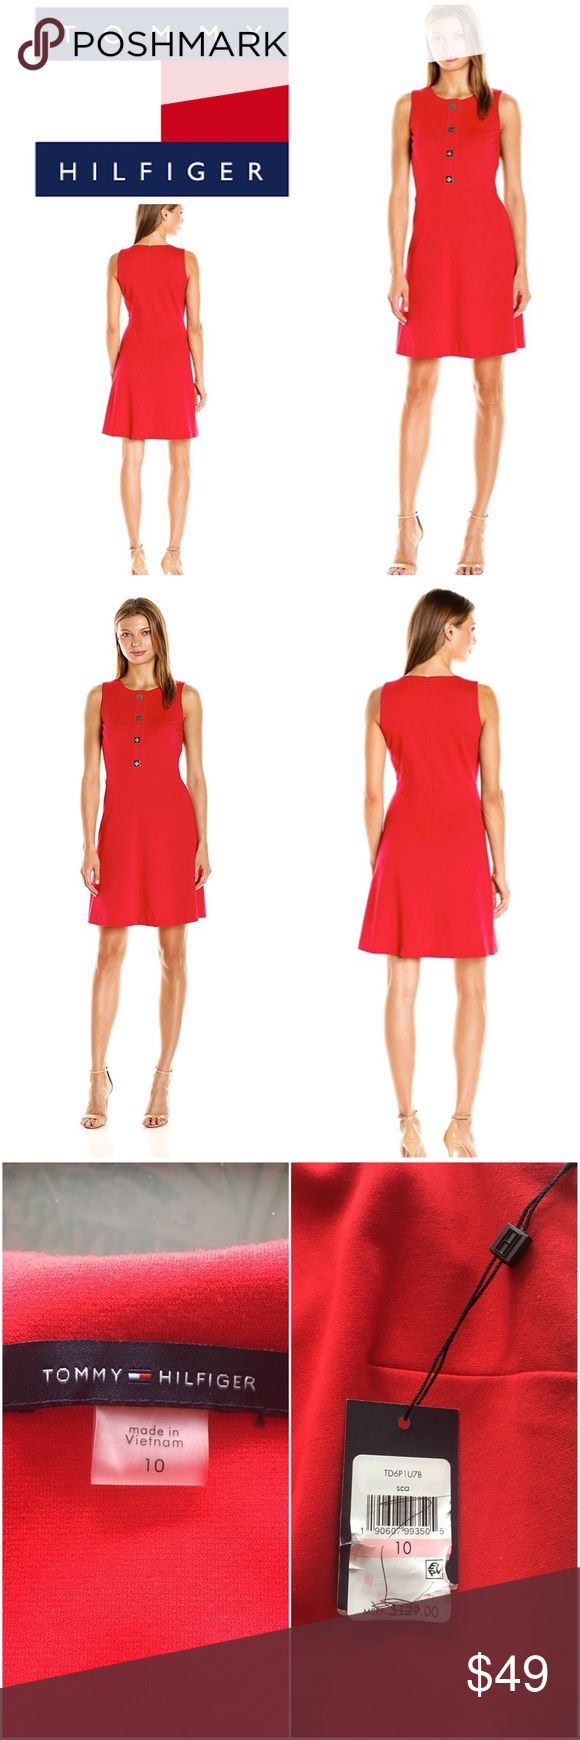 """New Tommy Hilfiger Red Dress New with tags, Tommy Hilfiger Red Sheath Dress. Gorgeous! New & never worn.   Size 10 Bust: 37"""" Waist: 29.5"""" Hips: 38"""" Some stretch   Originally bought for a client, I'm currently cleaning out my client closets. Open to offers on bundles. 15% off bundles of 3+. Shipping cost is the same with one or multiple items!   Free gift with every purchase! Your purchase goes towards the non-profit organization I'm founding! <3 Tommy Hilfiger Dresses"""